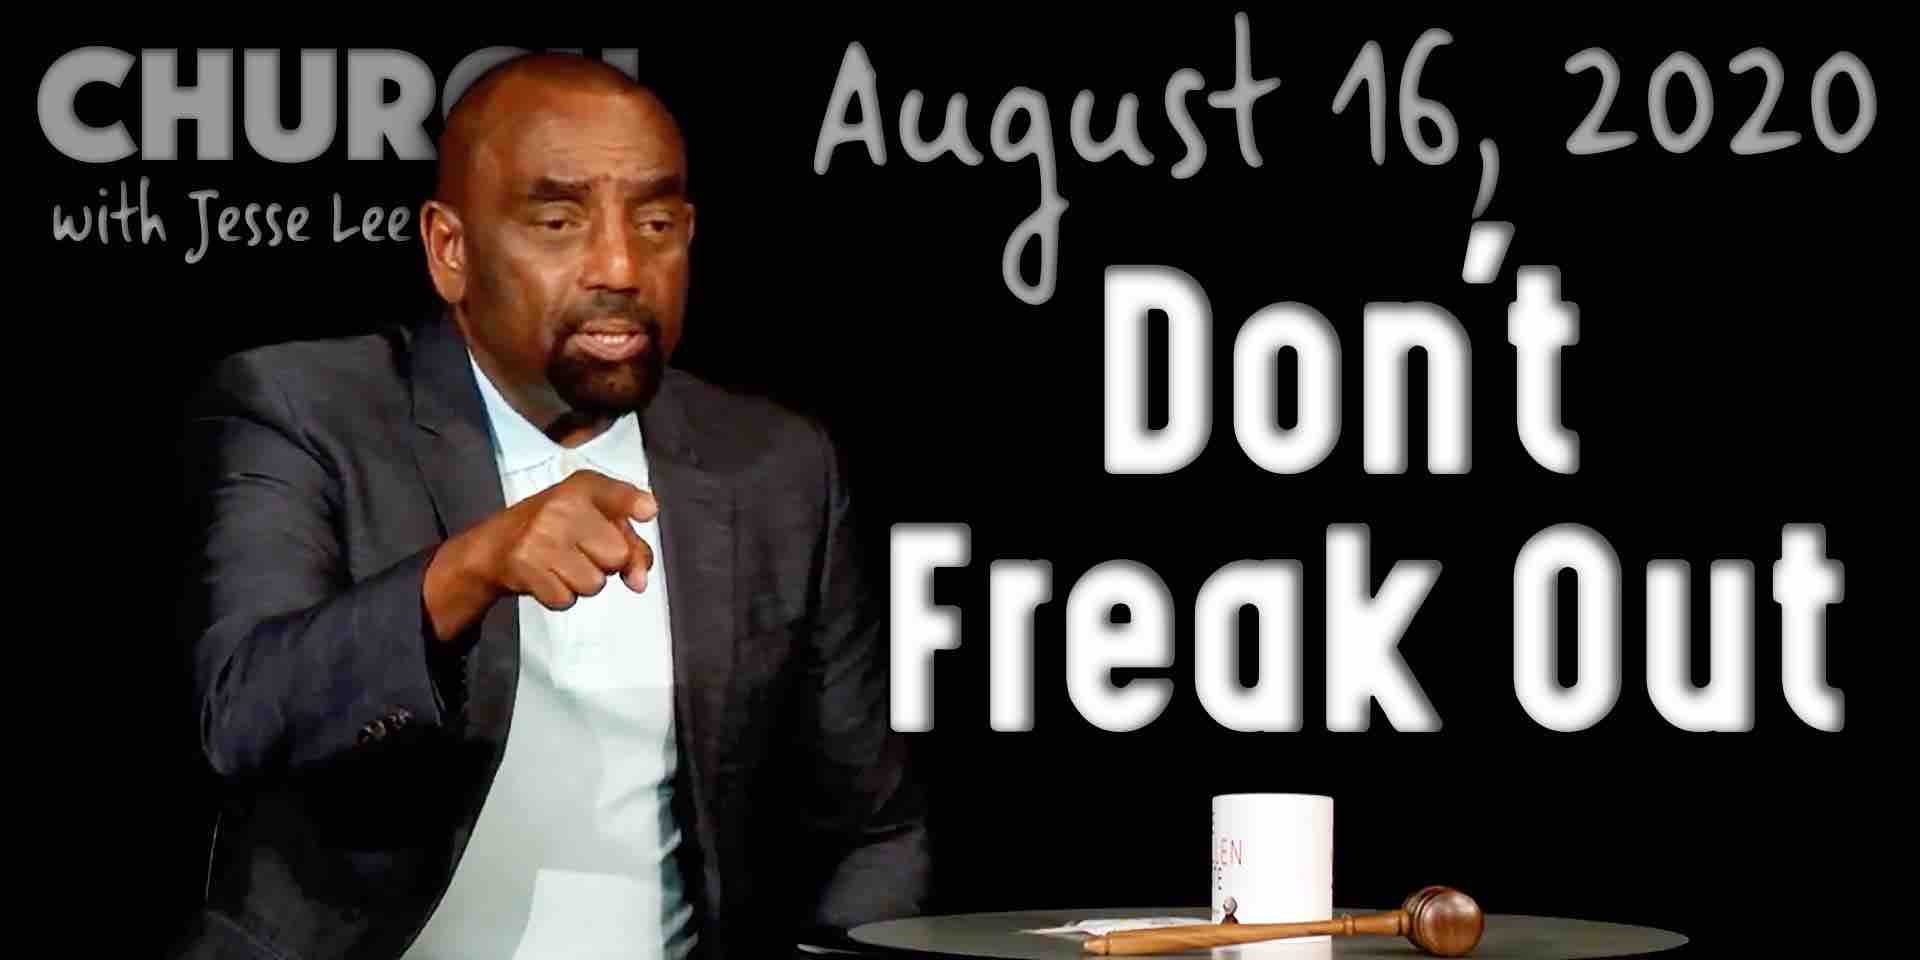 Church, Aug 16, 2020: Don't Freak Out